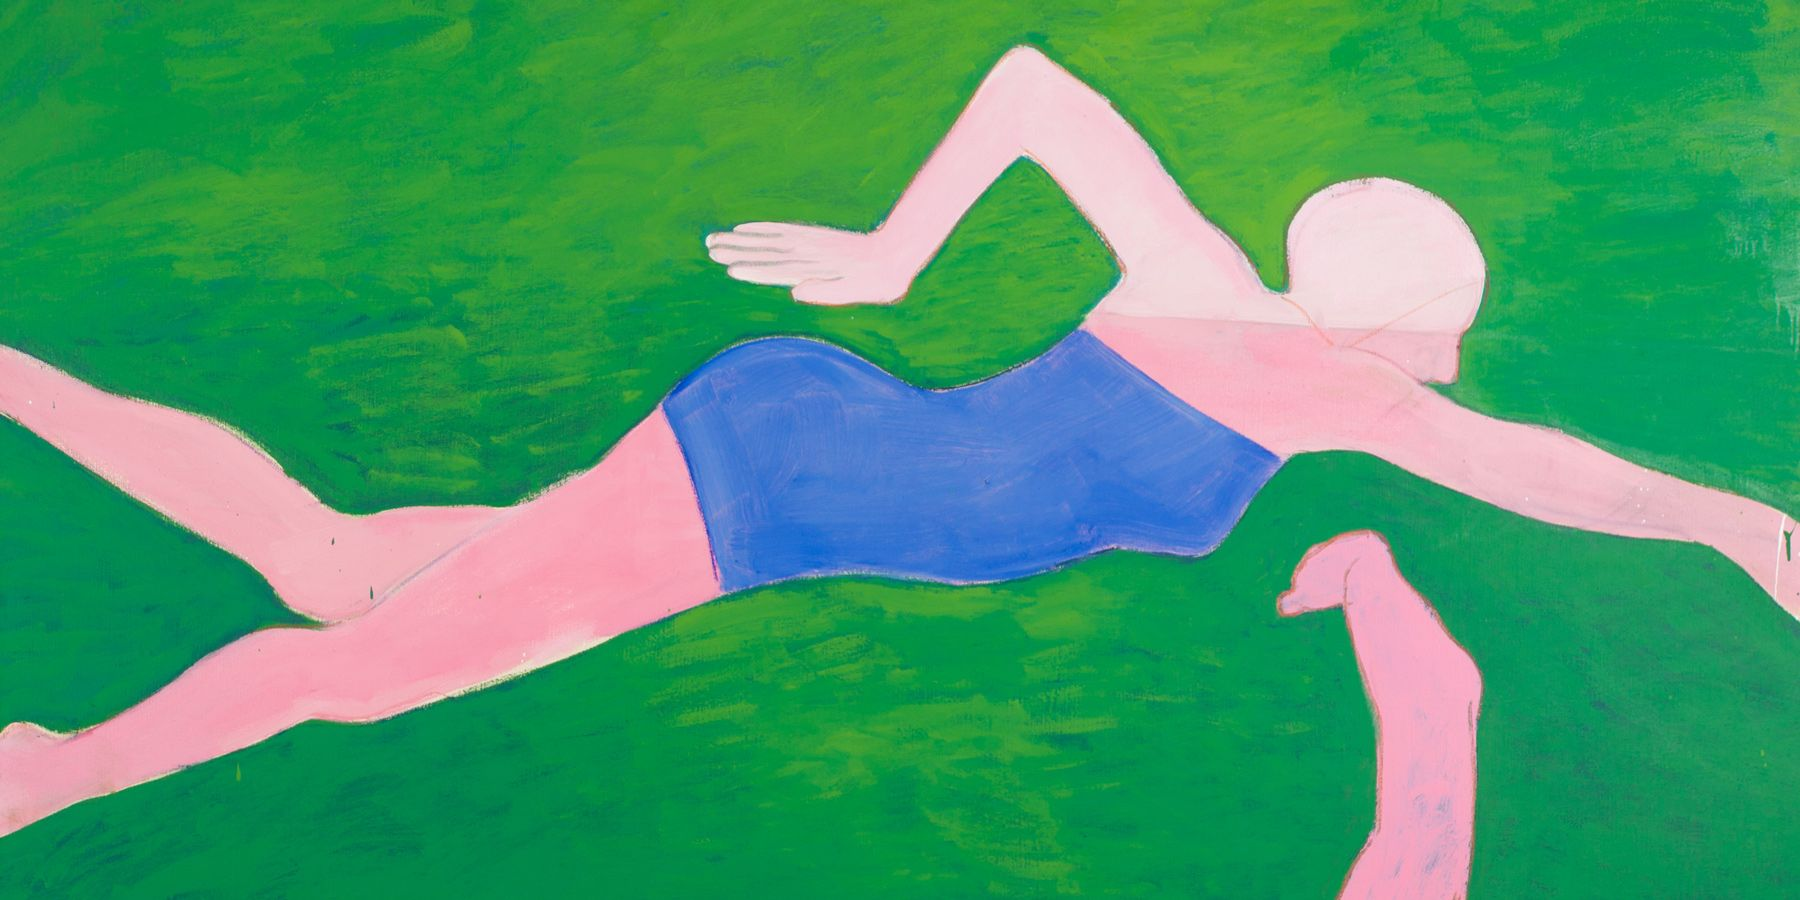 Detail of a painting by Joan Brown titled The Swimmers #2 (The Crawl) from 1973